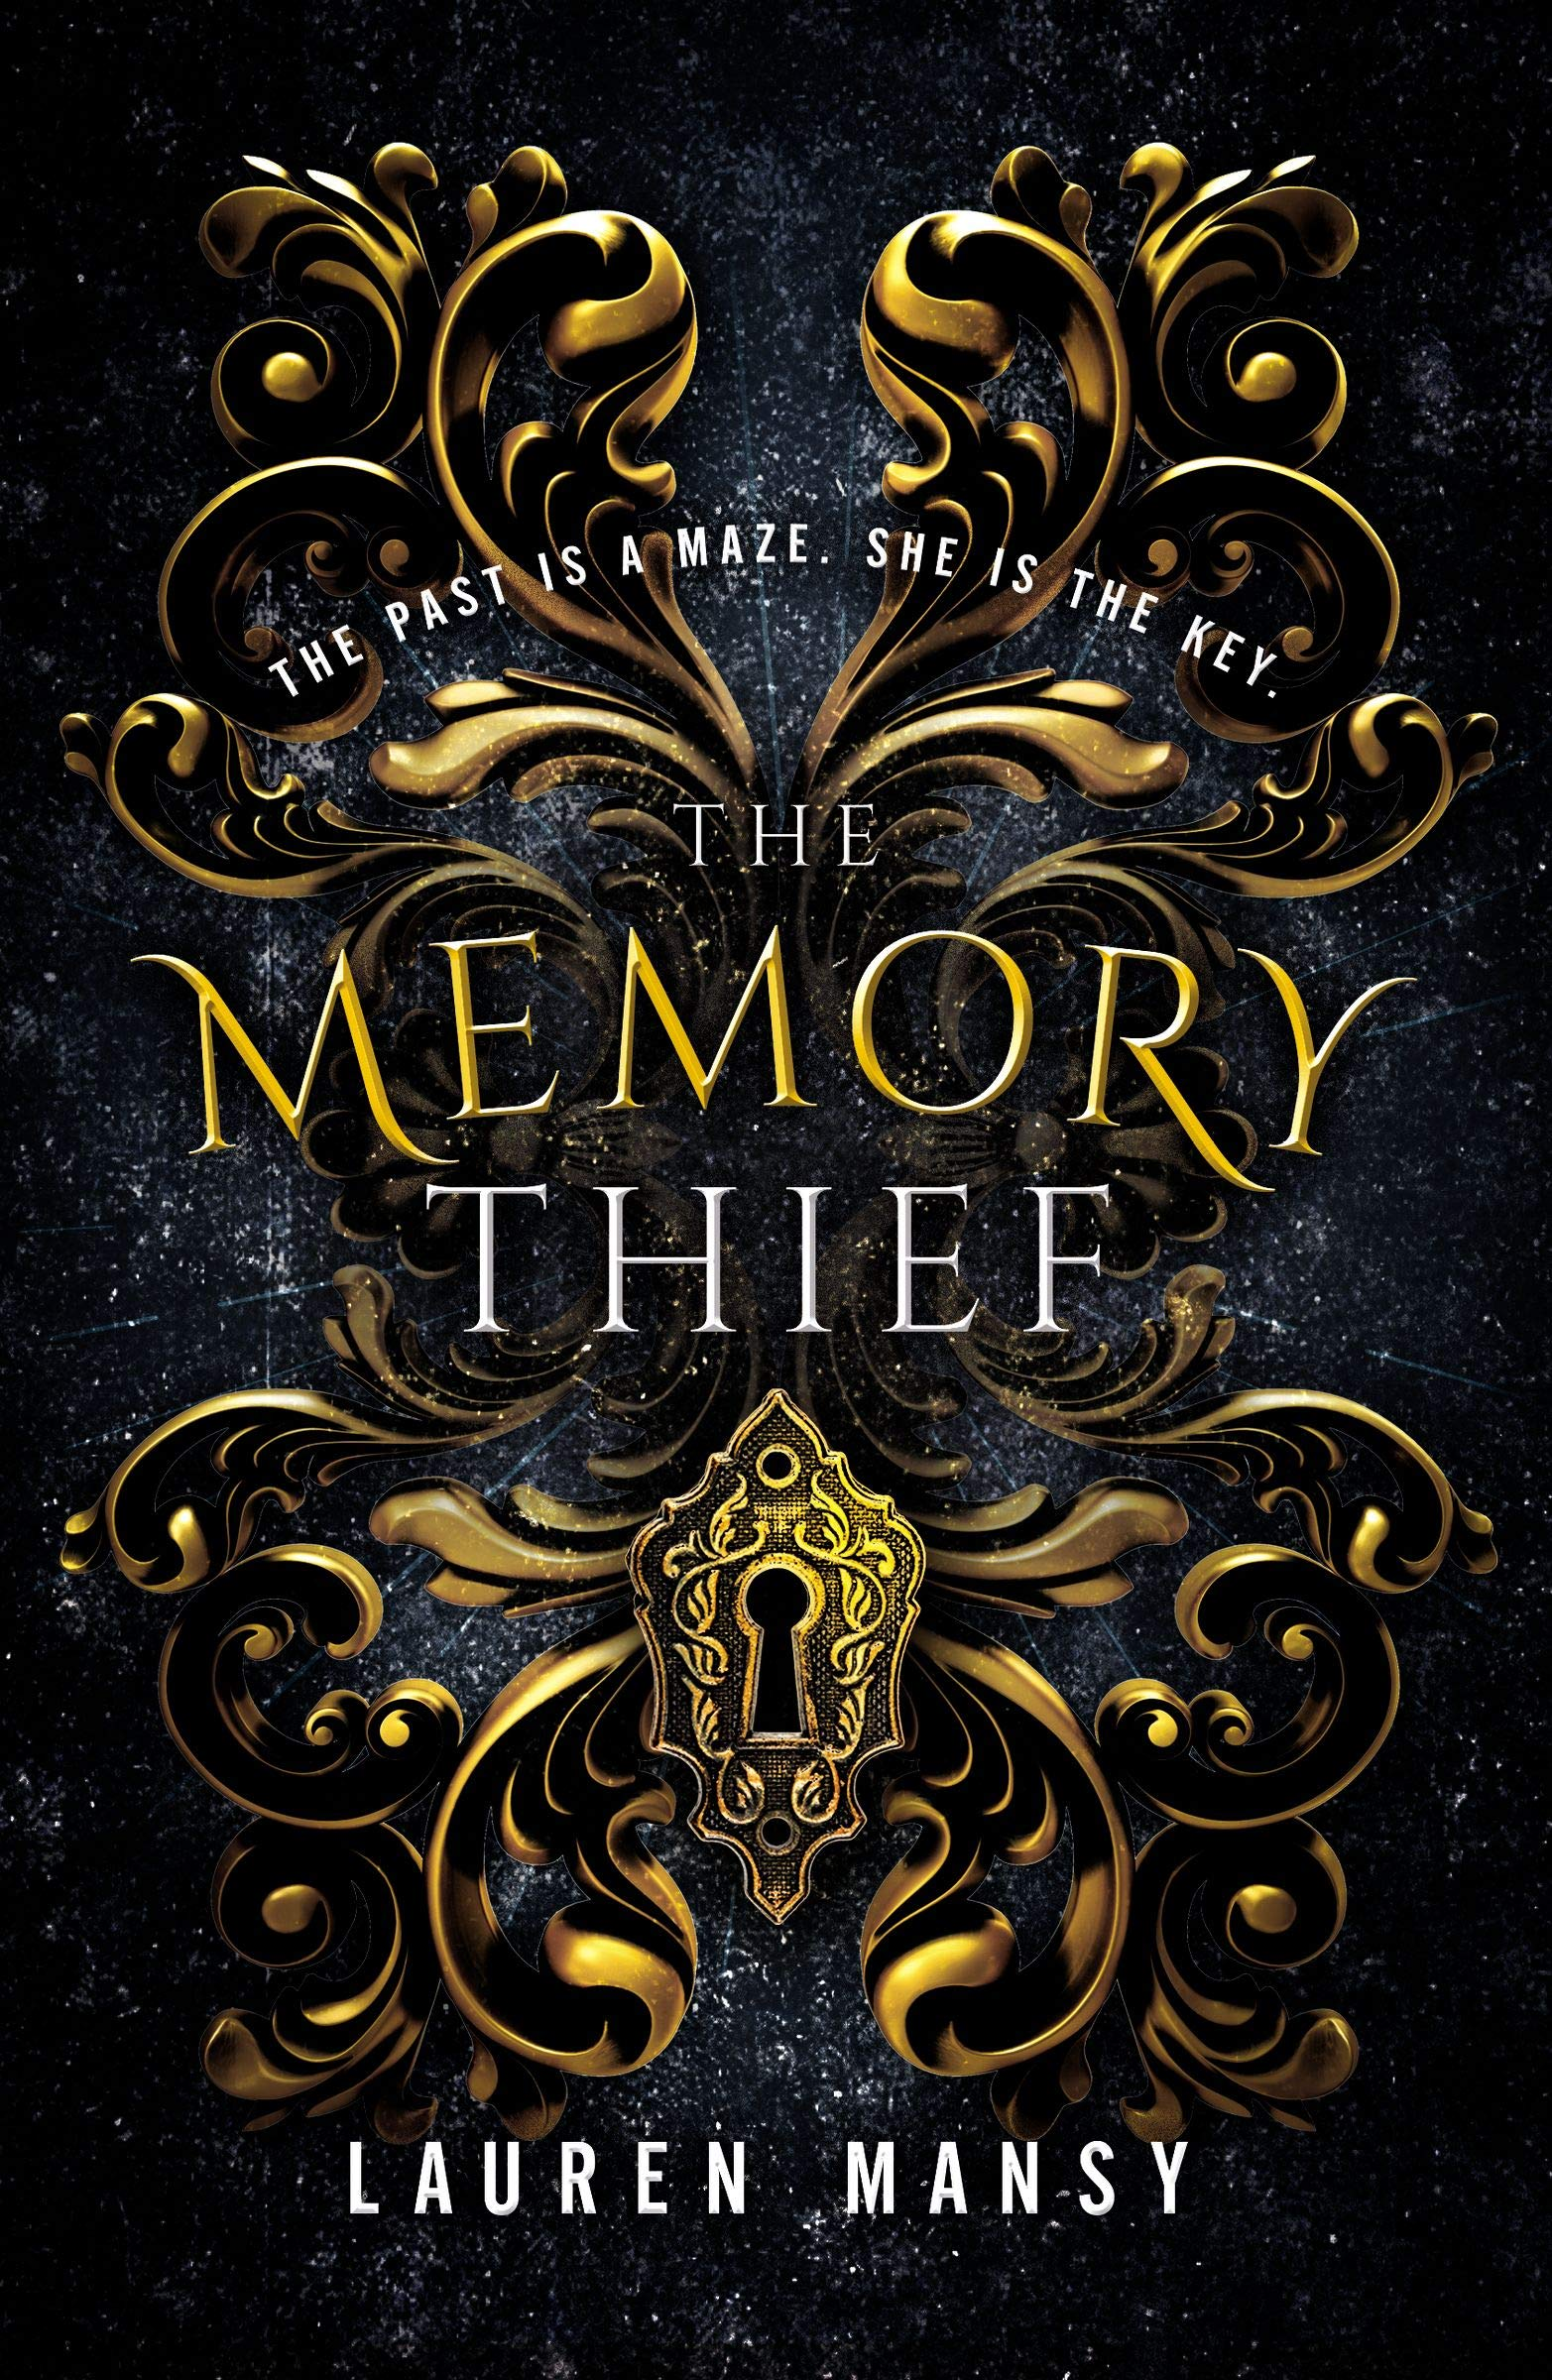 Image result for the memory thief cover